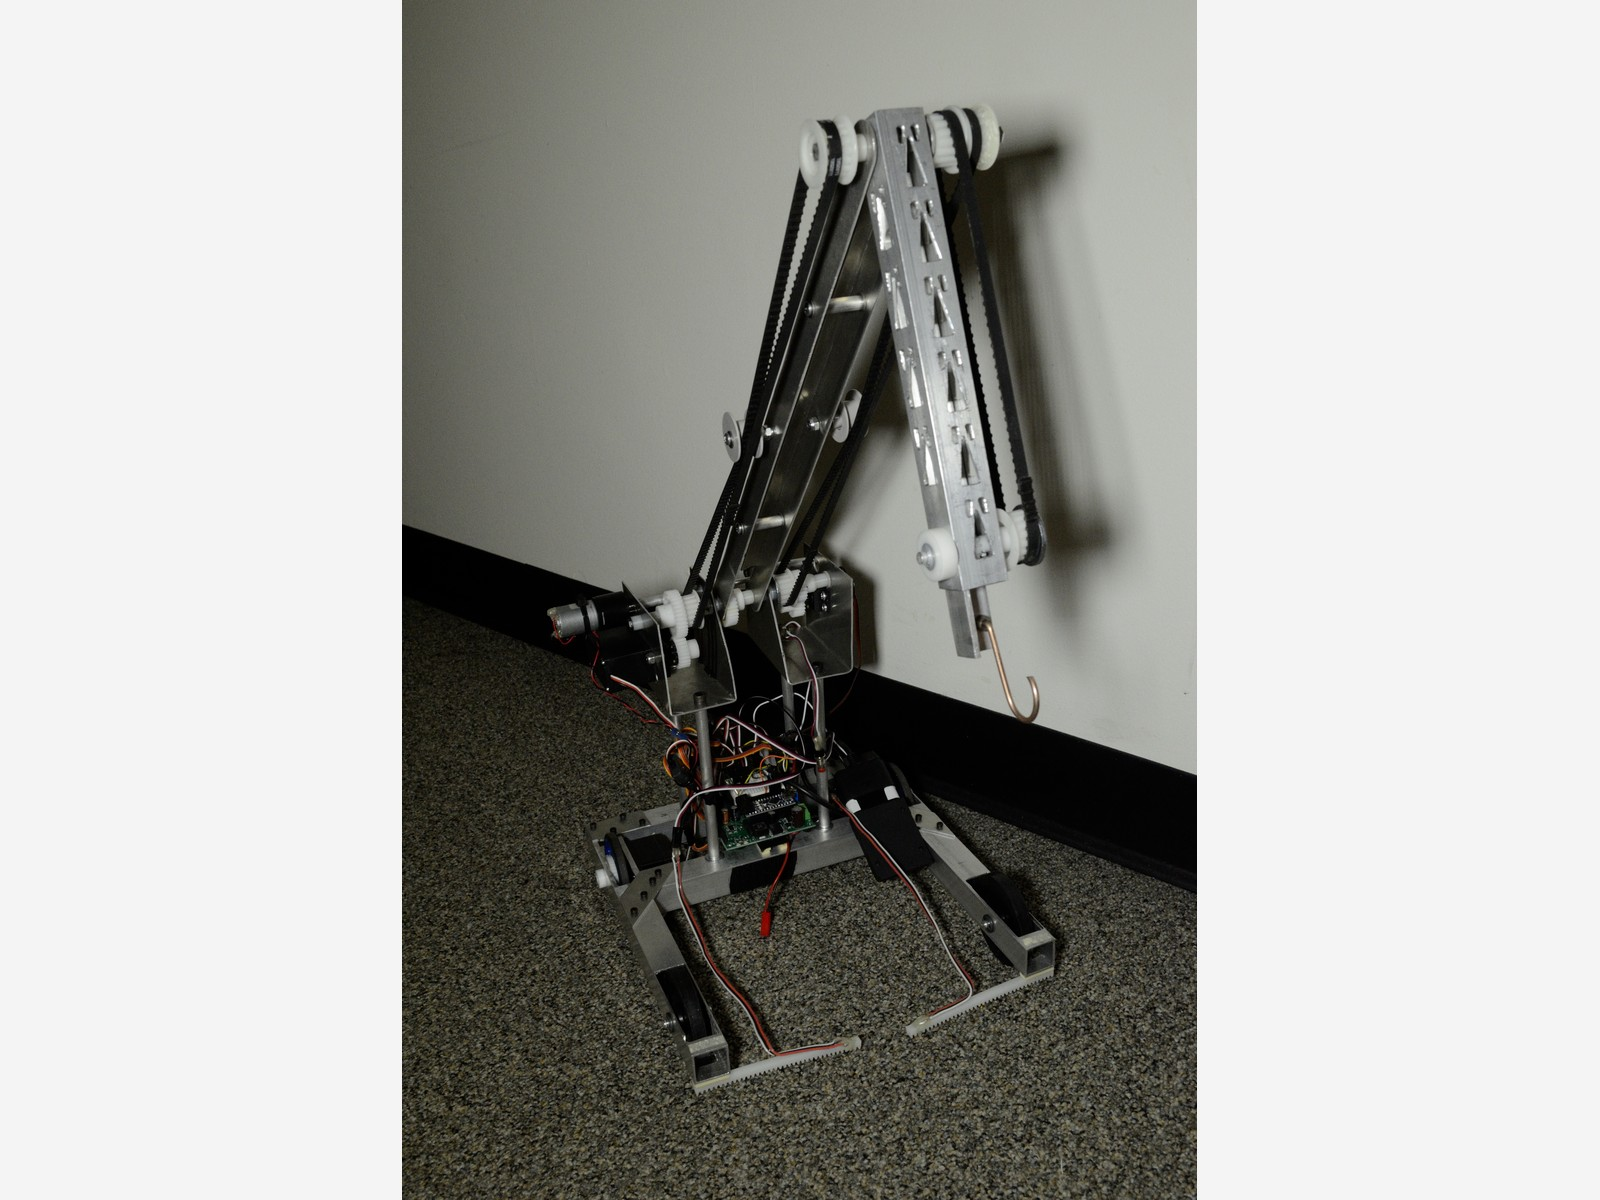 finished robot battlebot by ryan fish in mit course 2.007